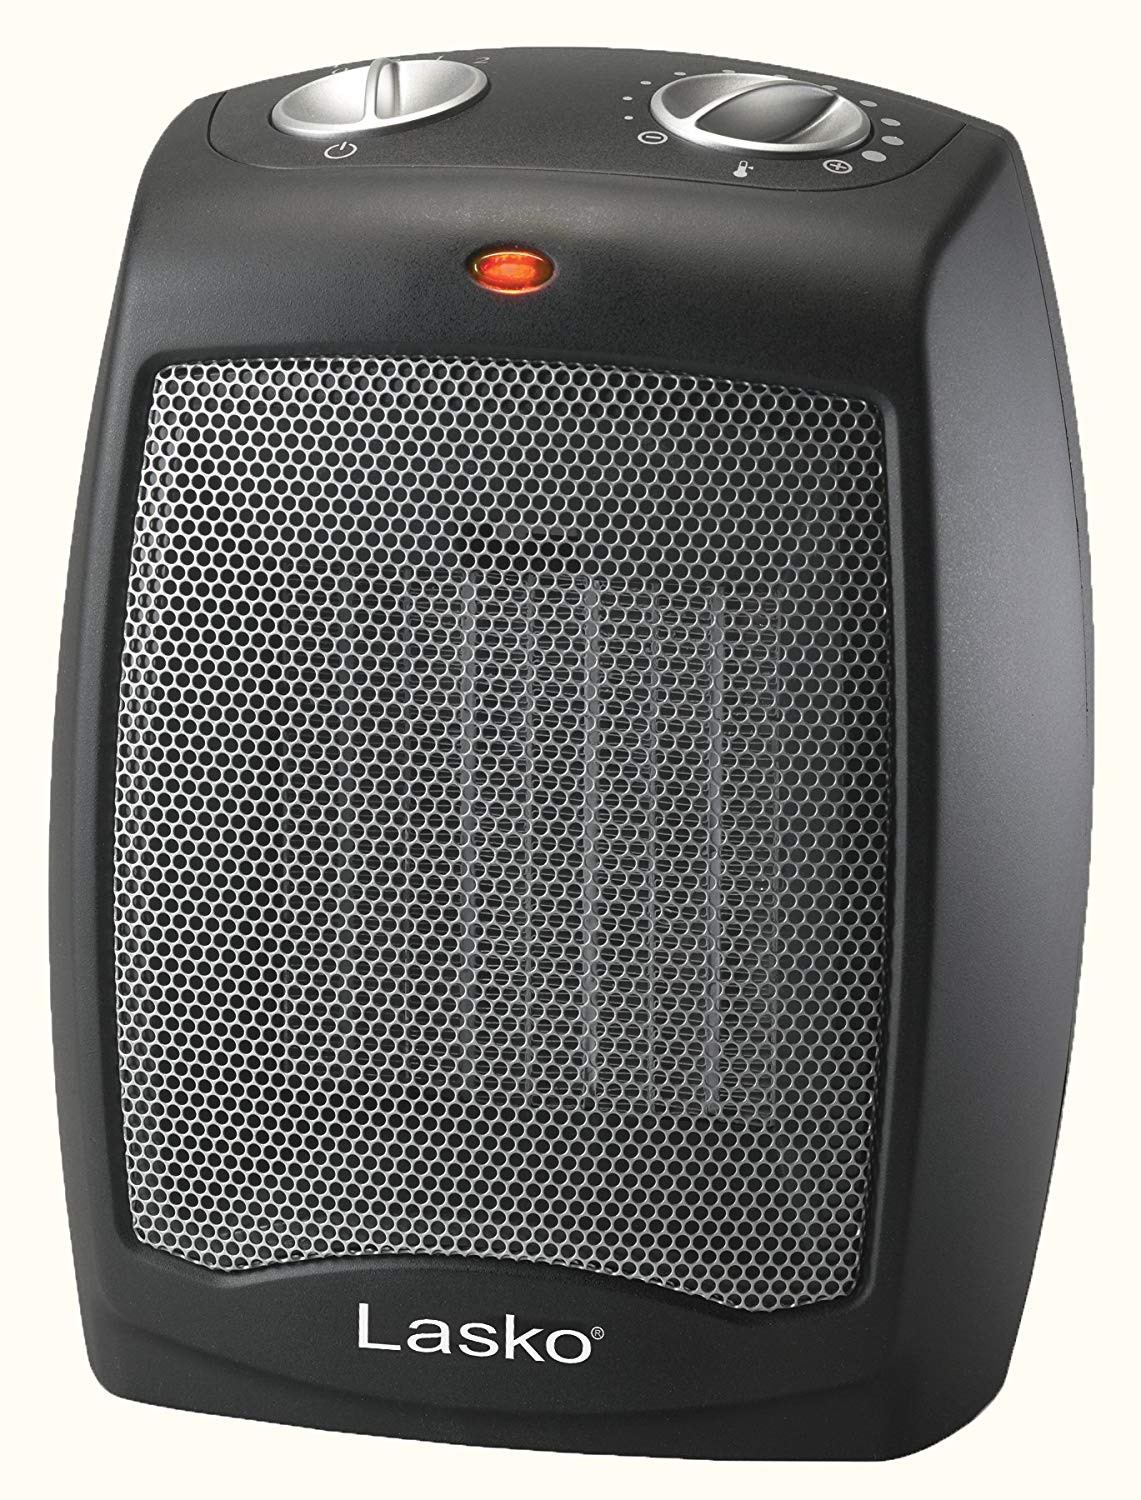 Lasko CD09250 Ceramic Portable Space Heater with Adjustable Thermostat